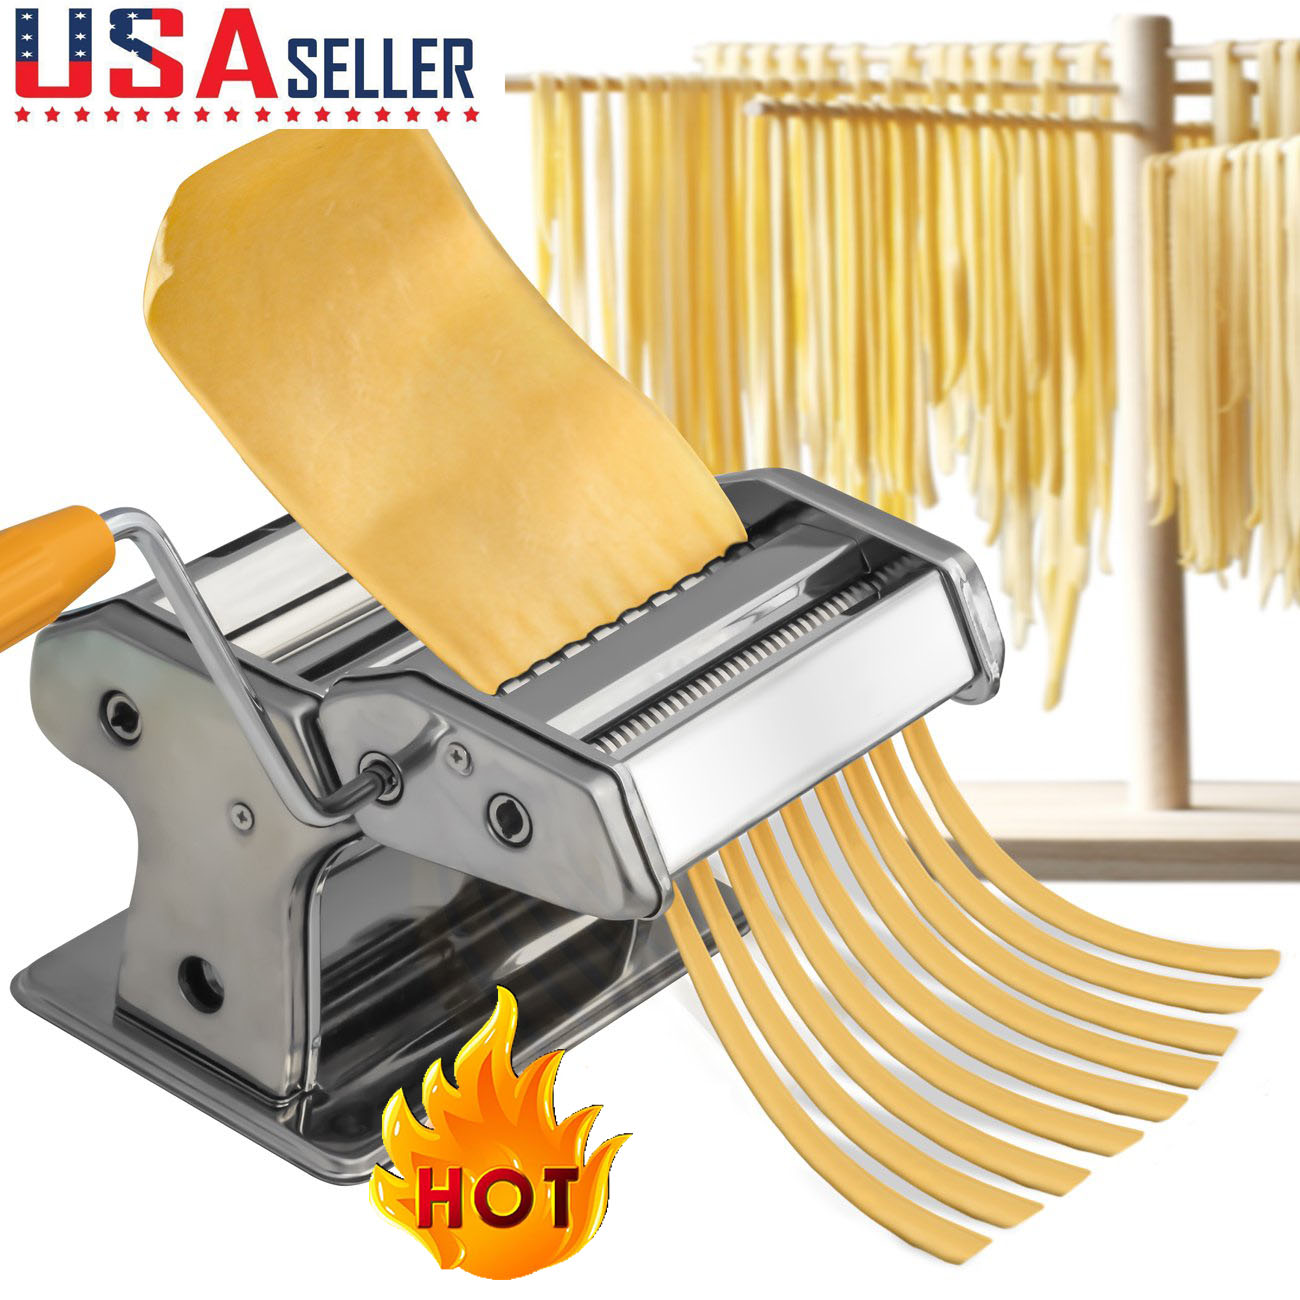 Details about Steel Pasta Maker Noodle Making Machine Dough Cutter Roller  with Handle